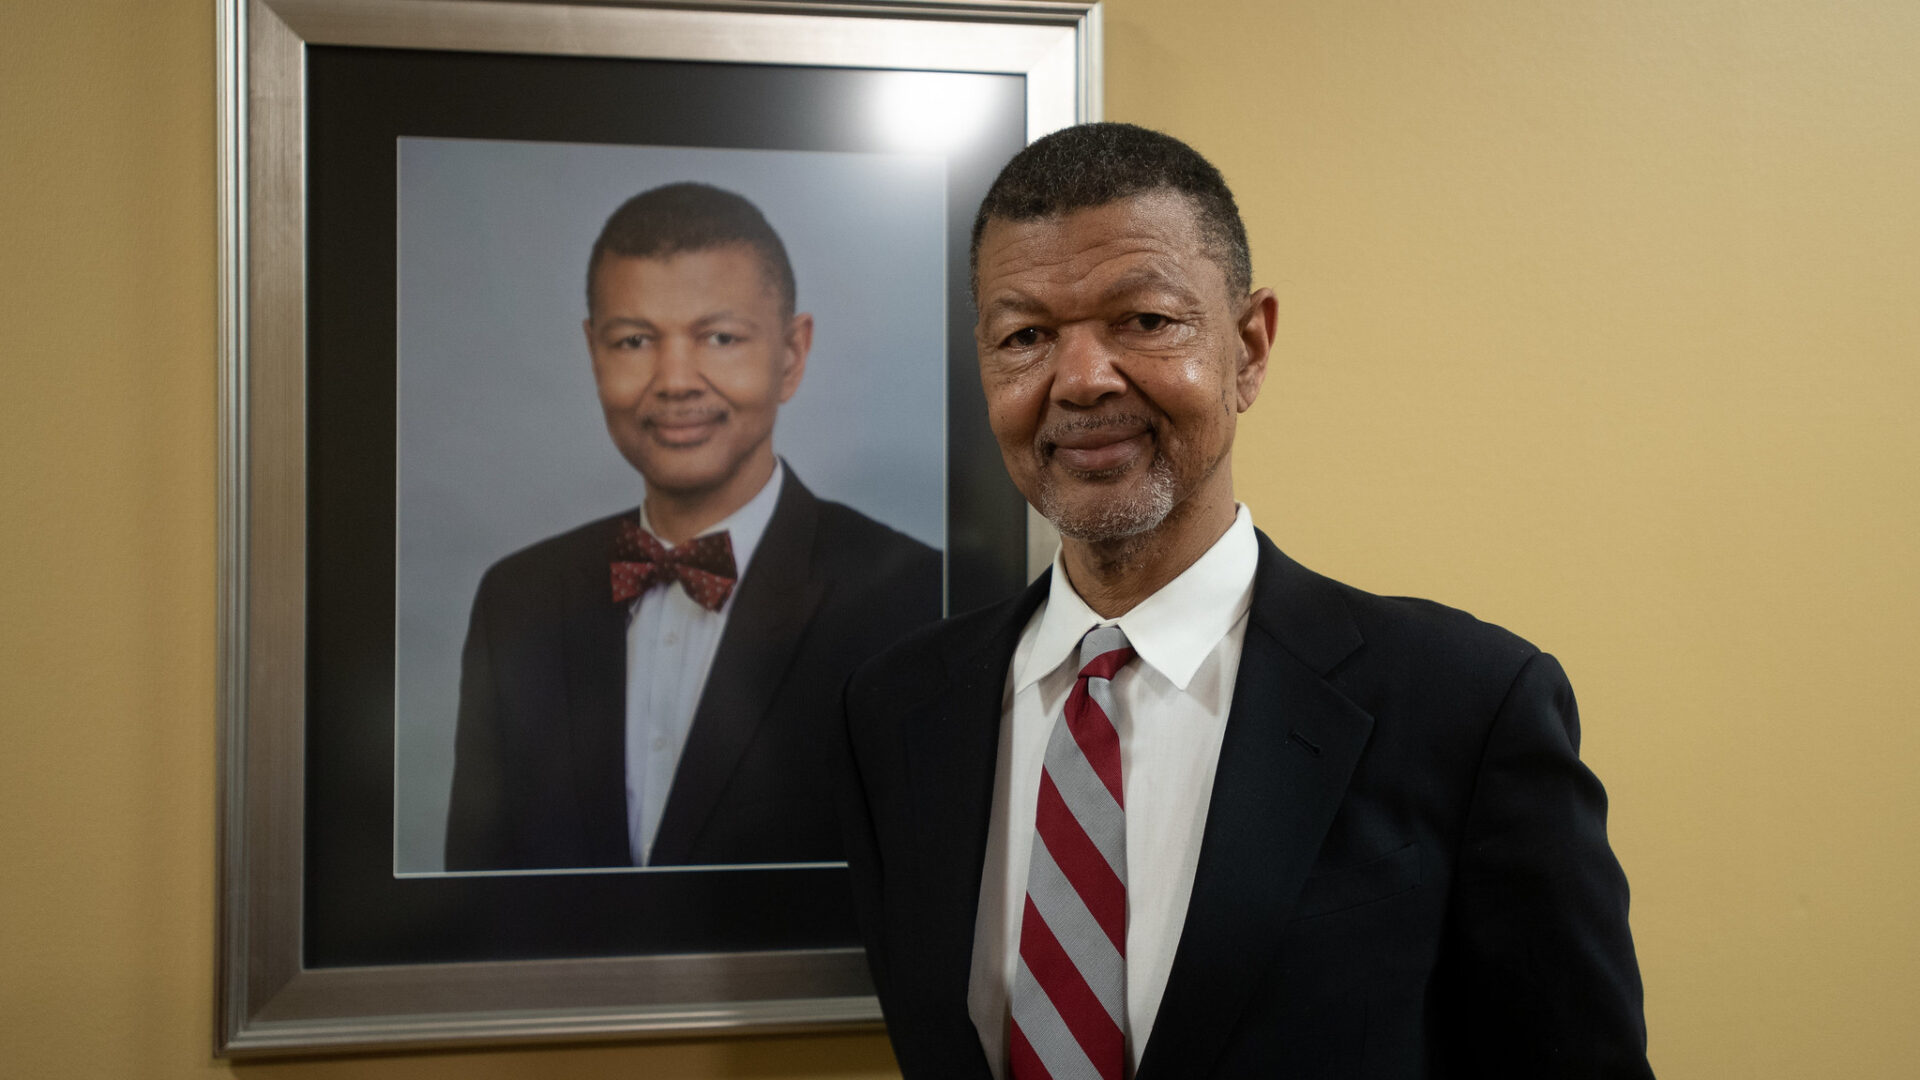 Gary Bledsoe '76 standing next to his portrait.